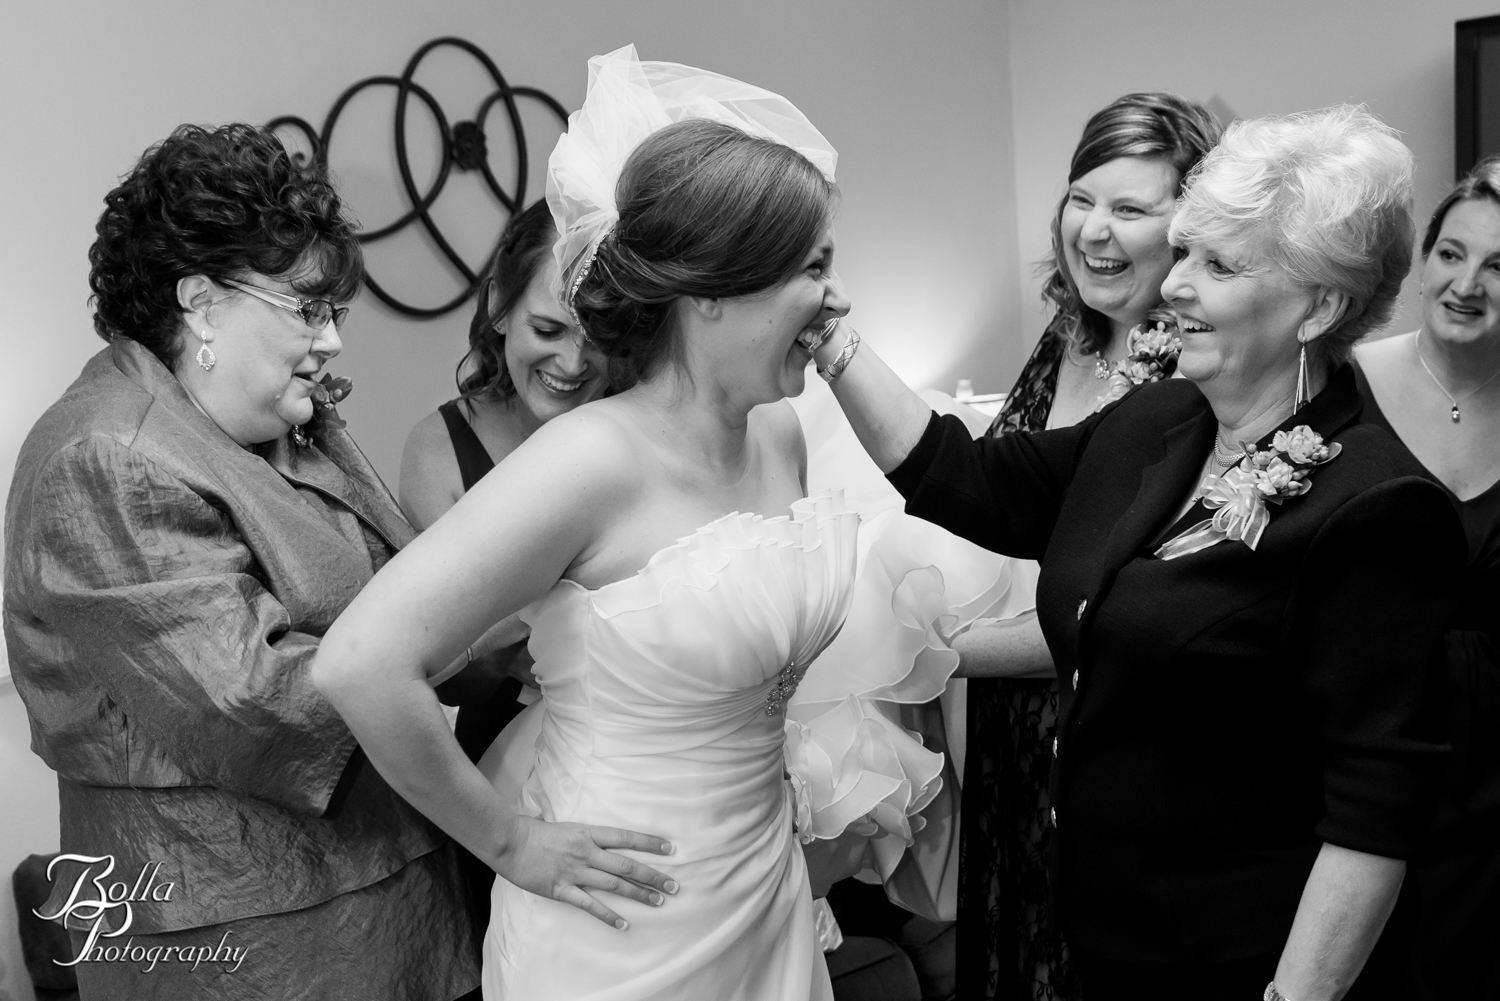 Bolla_Photography_St_Louis_wedding_photographer-0039.jpg